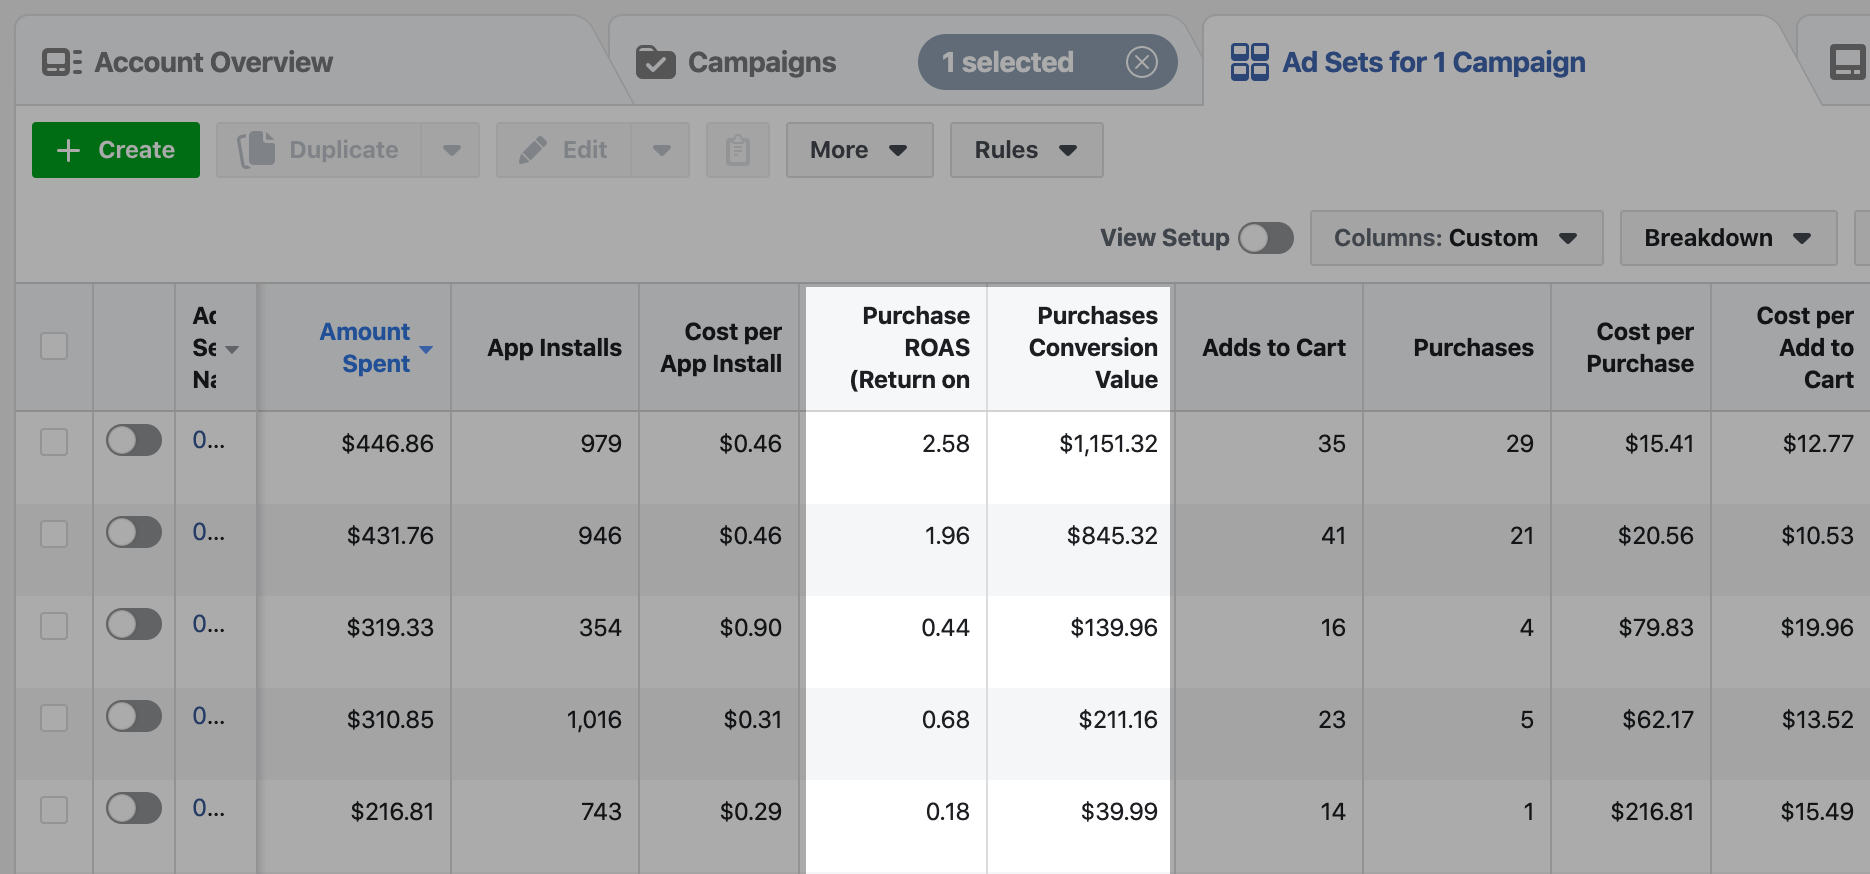 facebook ads integration for mobile subscription chart